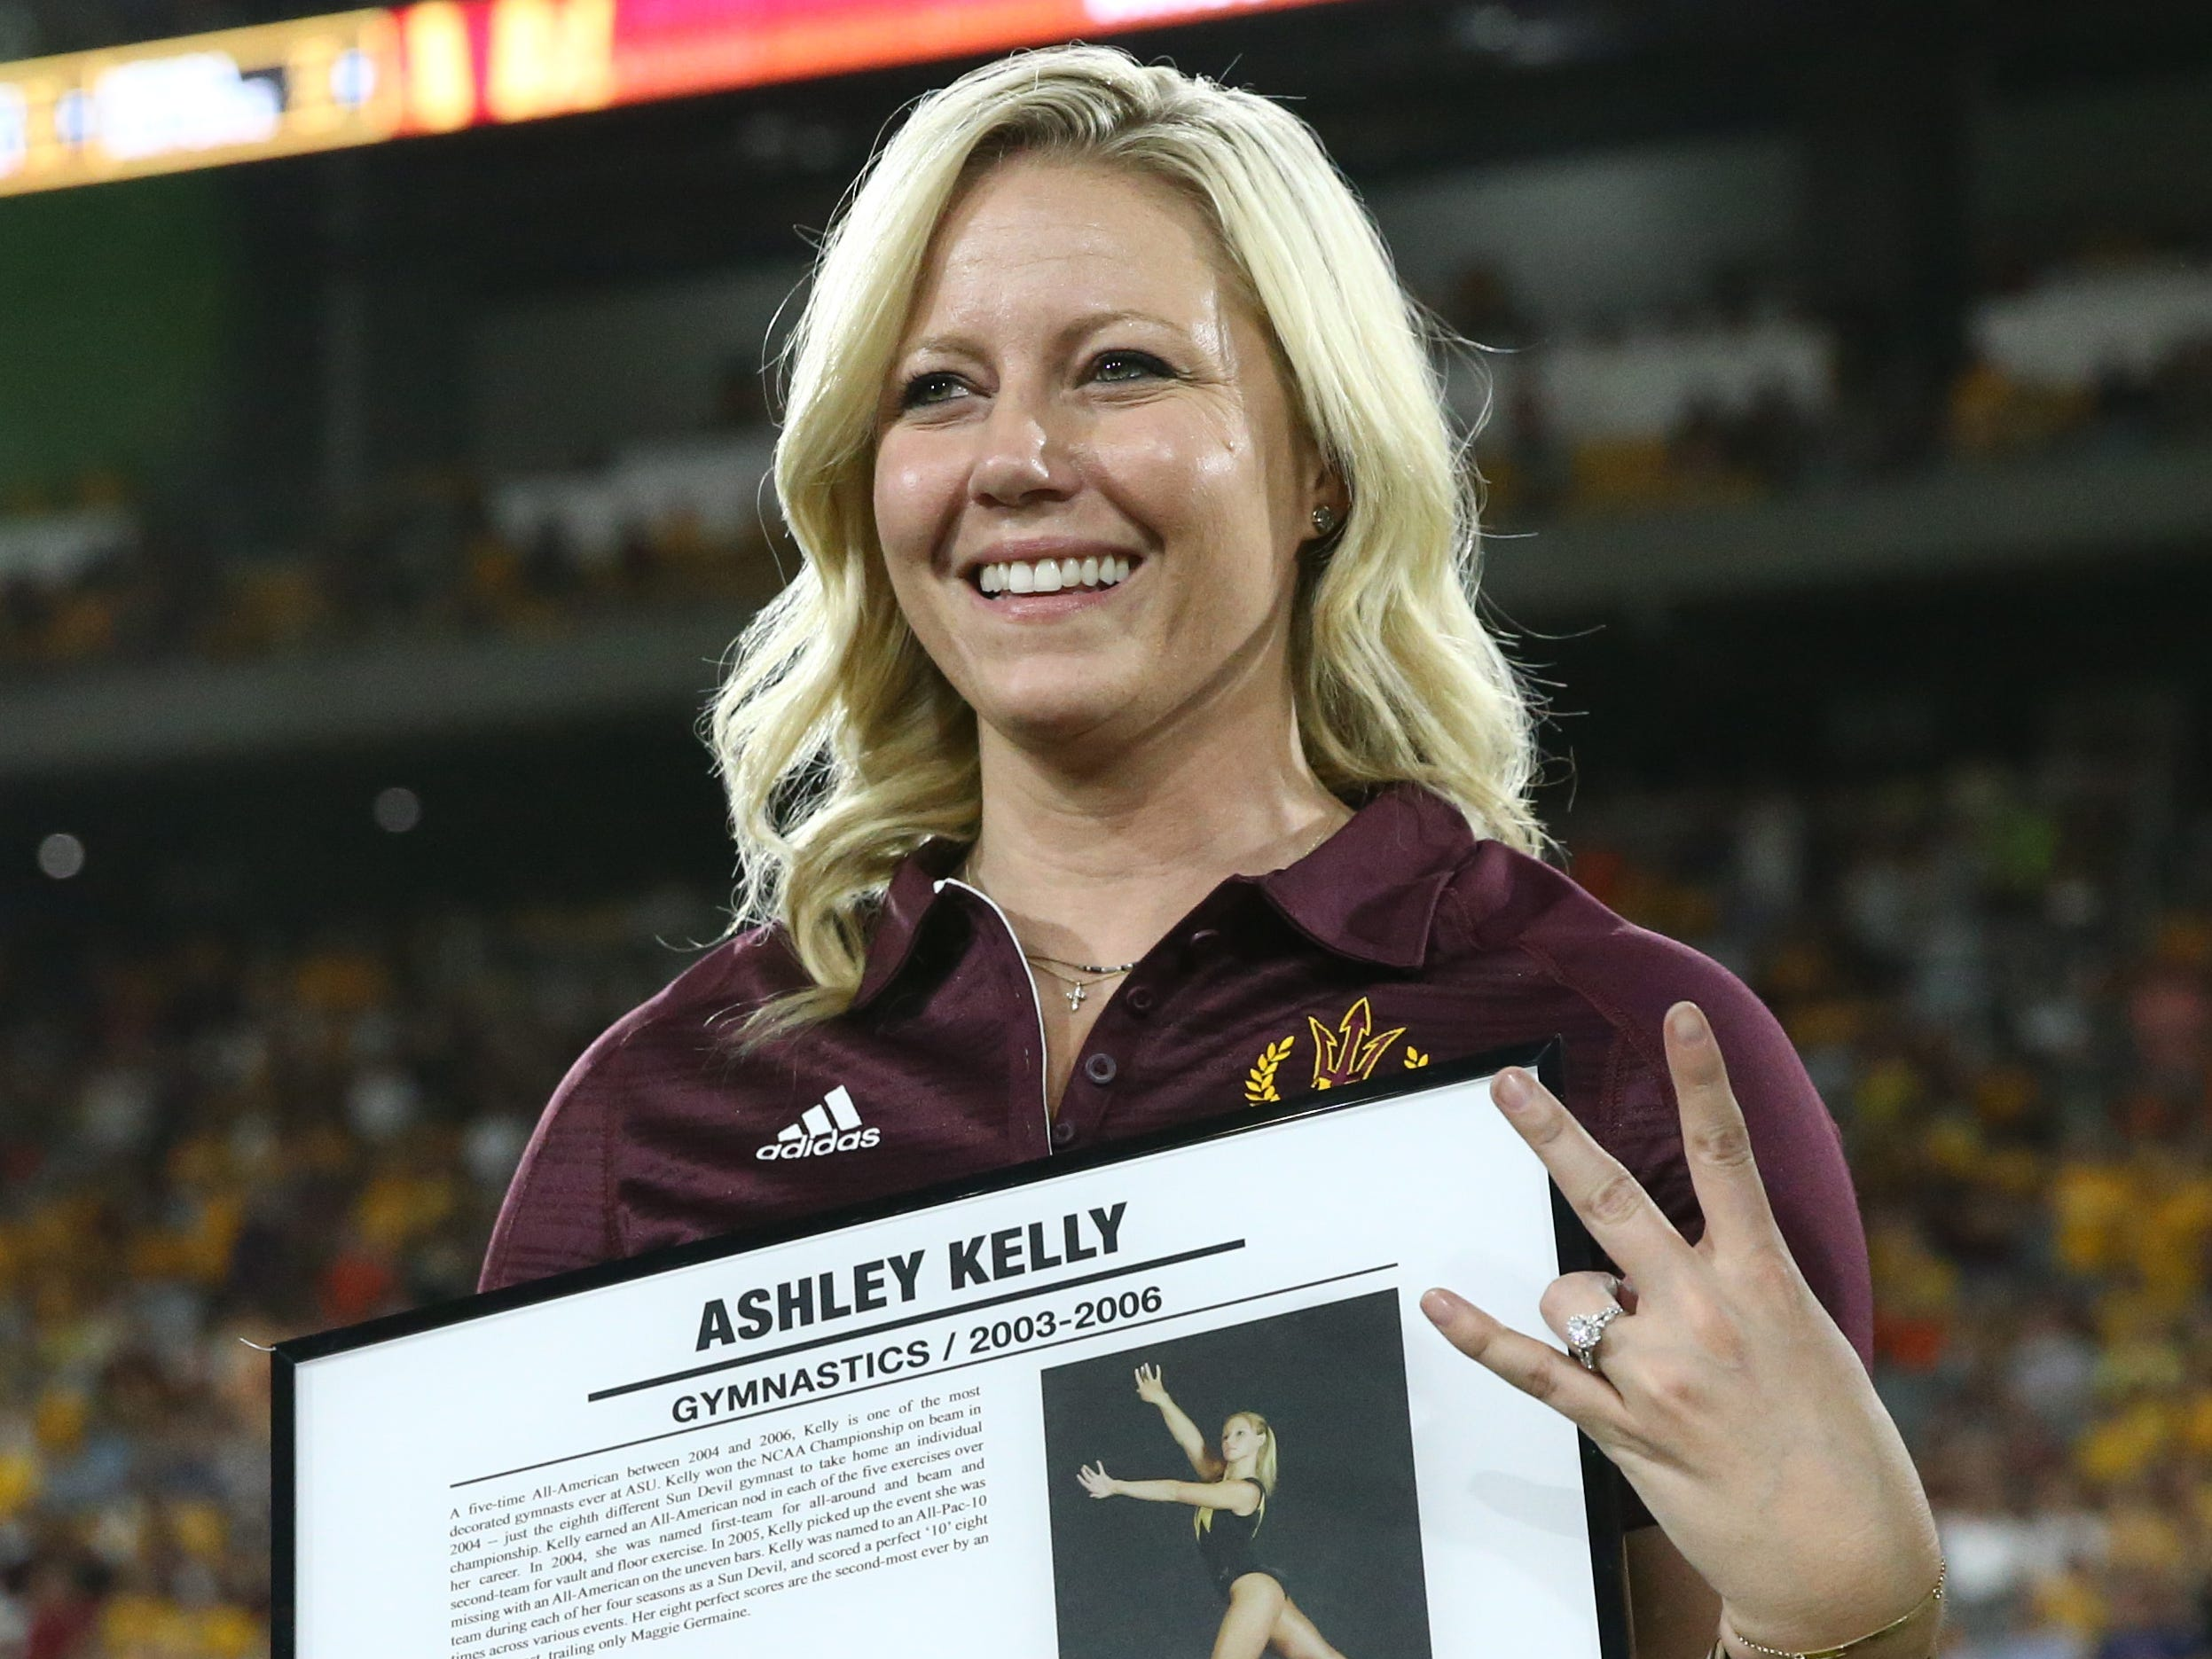 Arizona State gymnastics star Ashley Kelly is welcomed into the ASU Athletics Hall of Frame on Sep. 29, 2018, at Sun Devil Stadium.